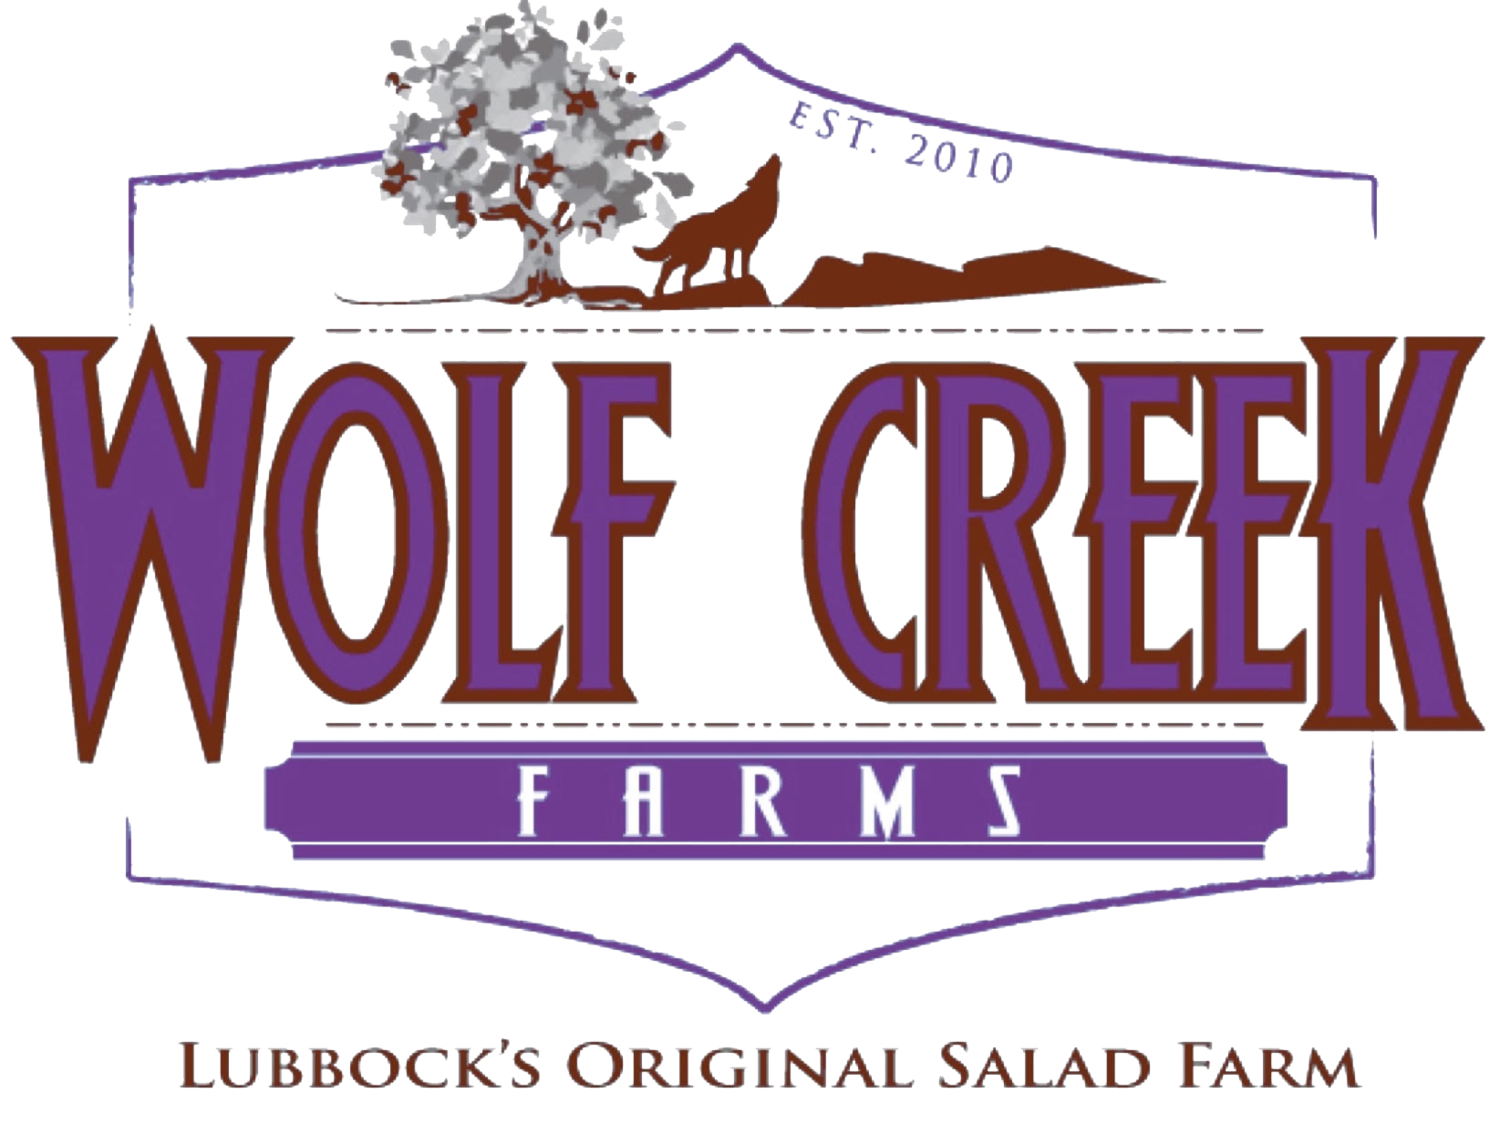 Wolf Creek Farms